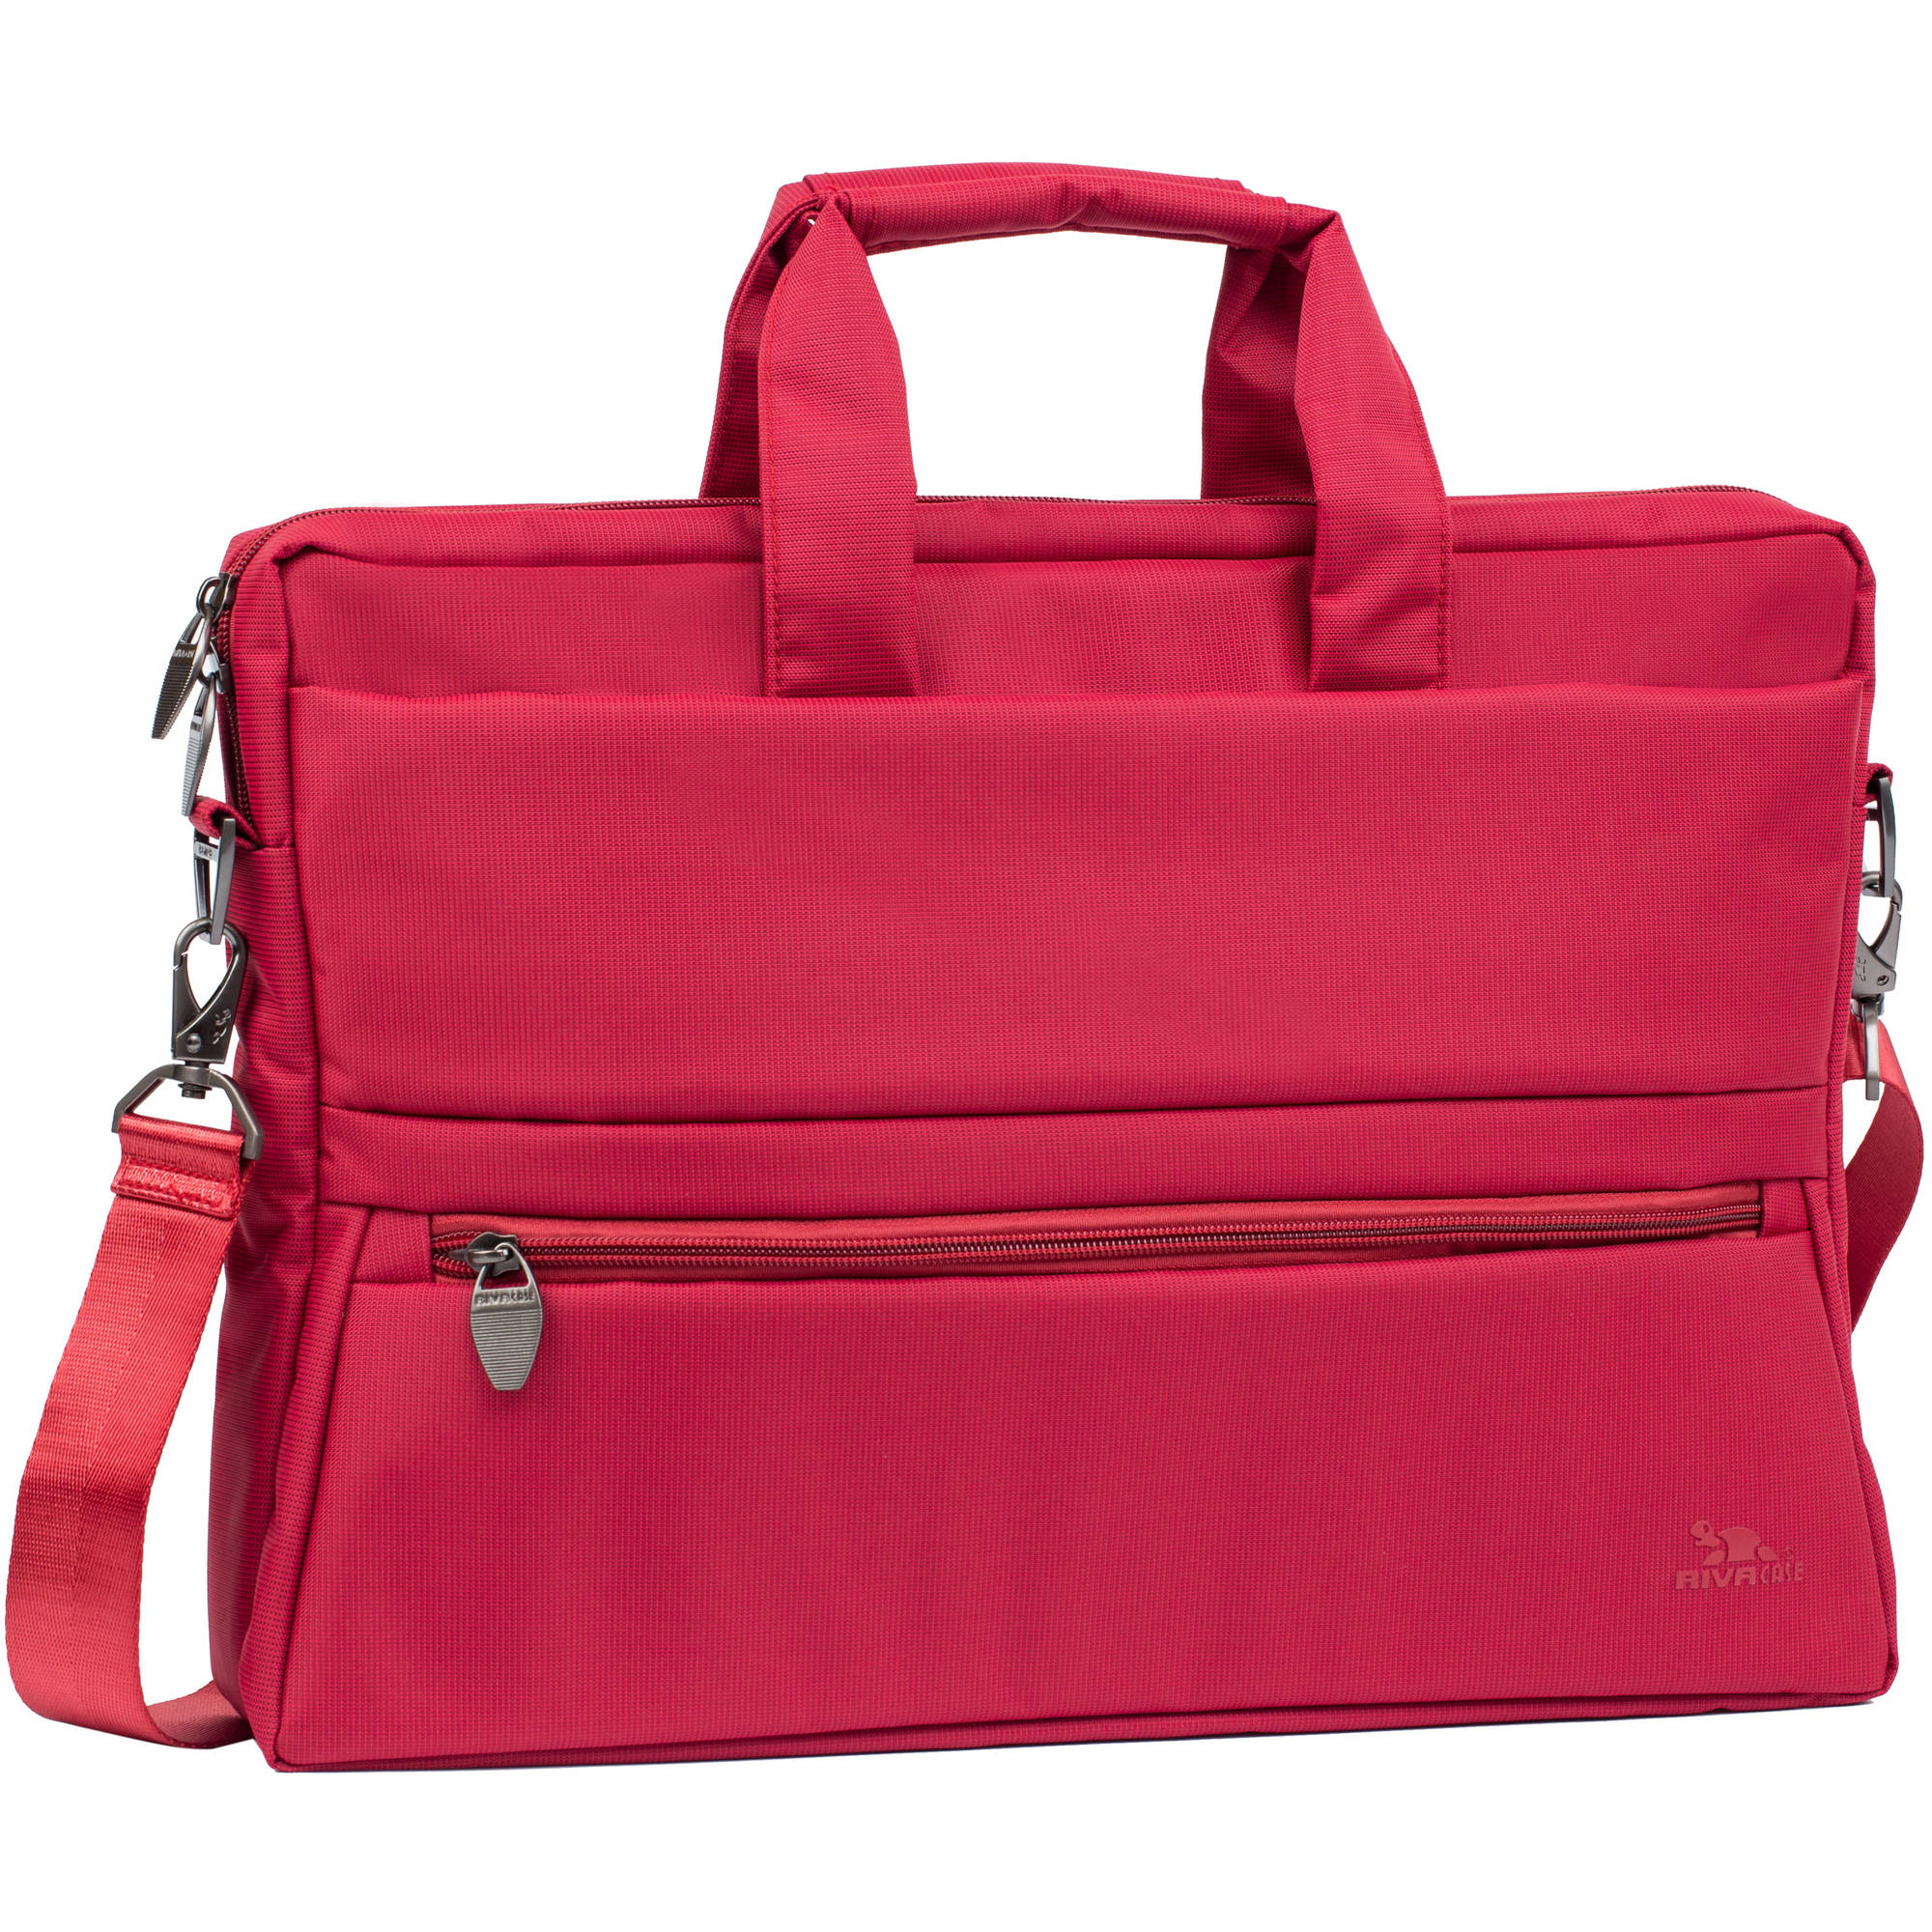 "RIVACASE 15.6"" Laptop Bag 8630, Red"